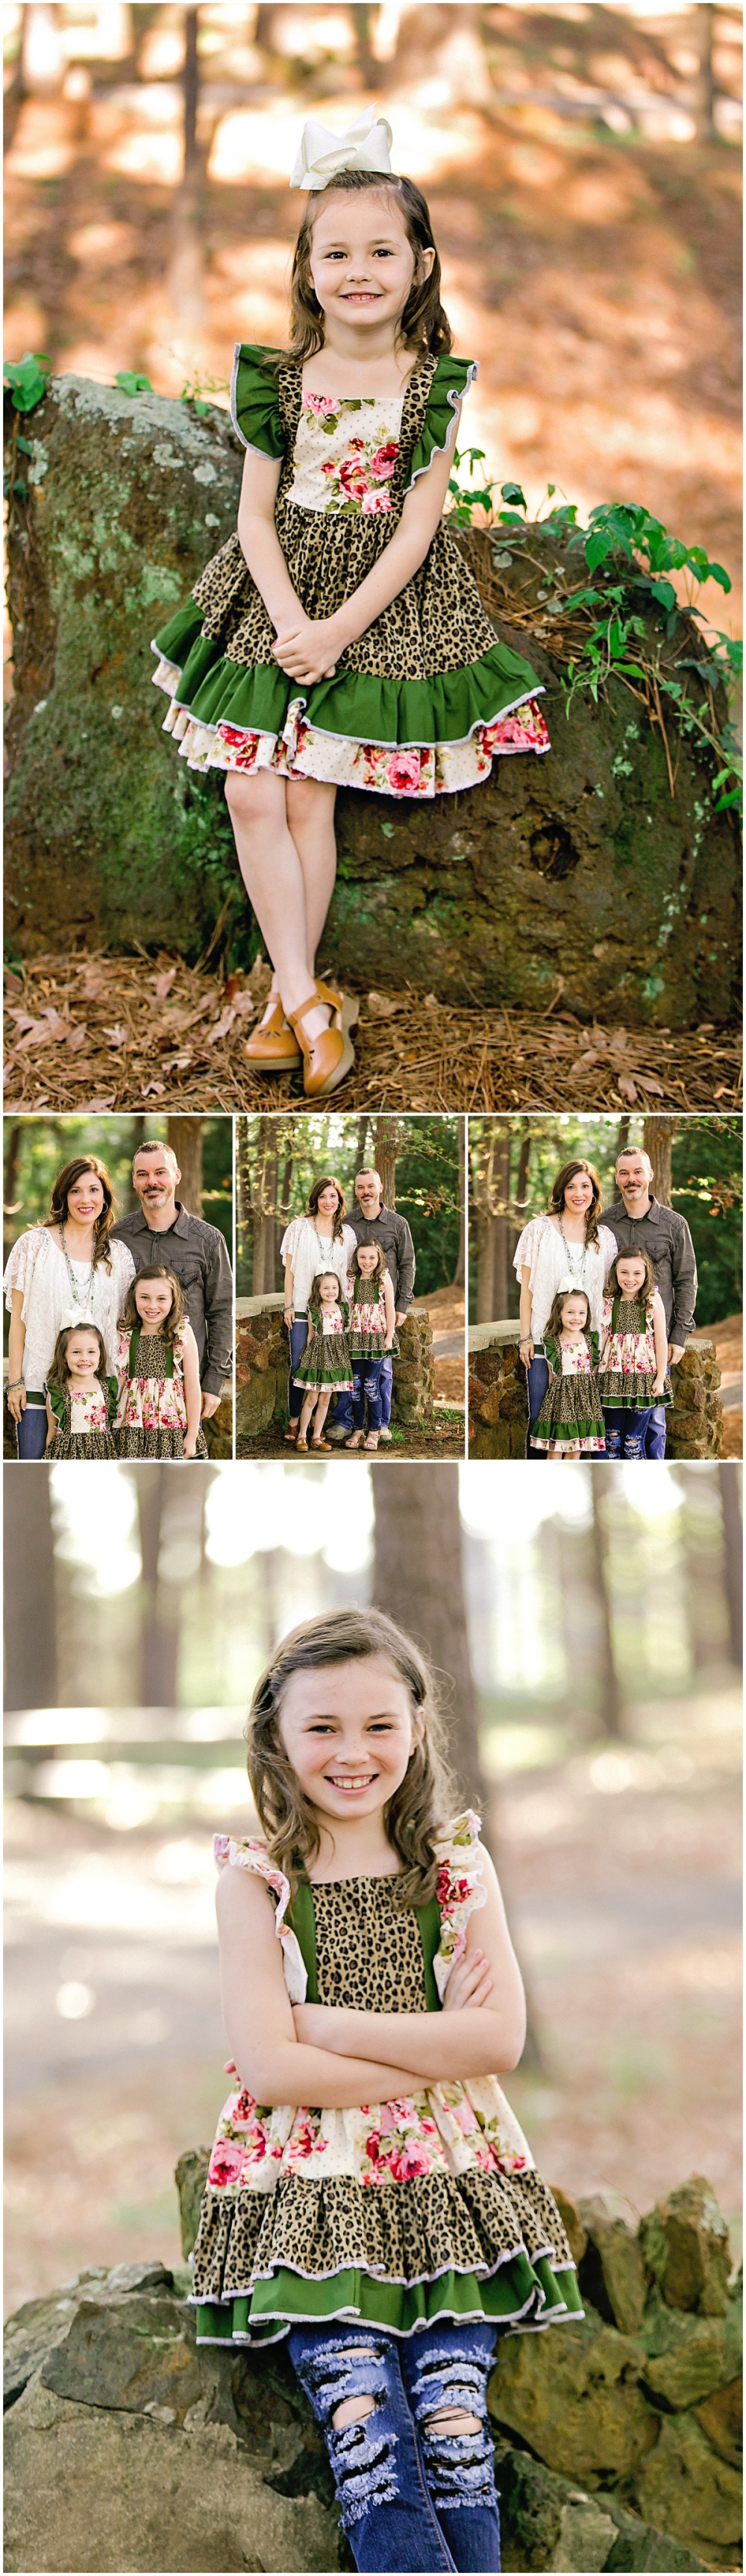 Family-Portraits-Spradlin-East-Texas-Carly-Barton-Photography_0038.jpg